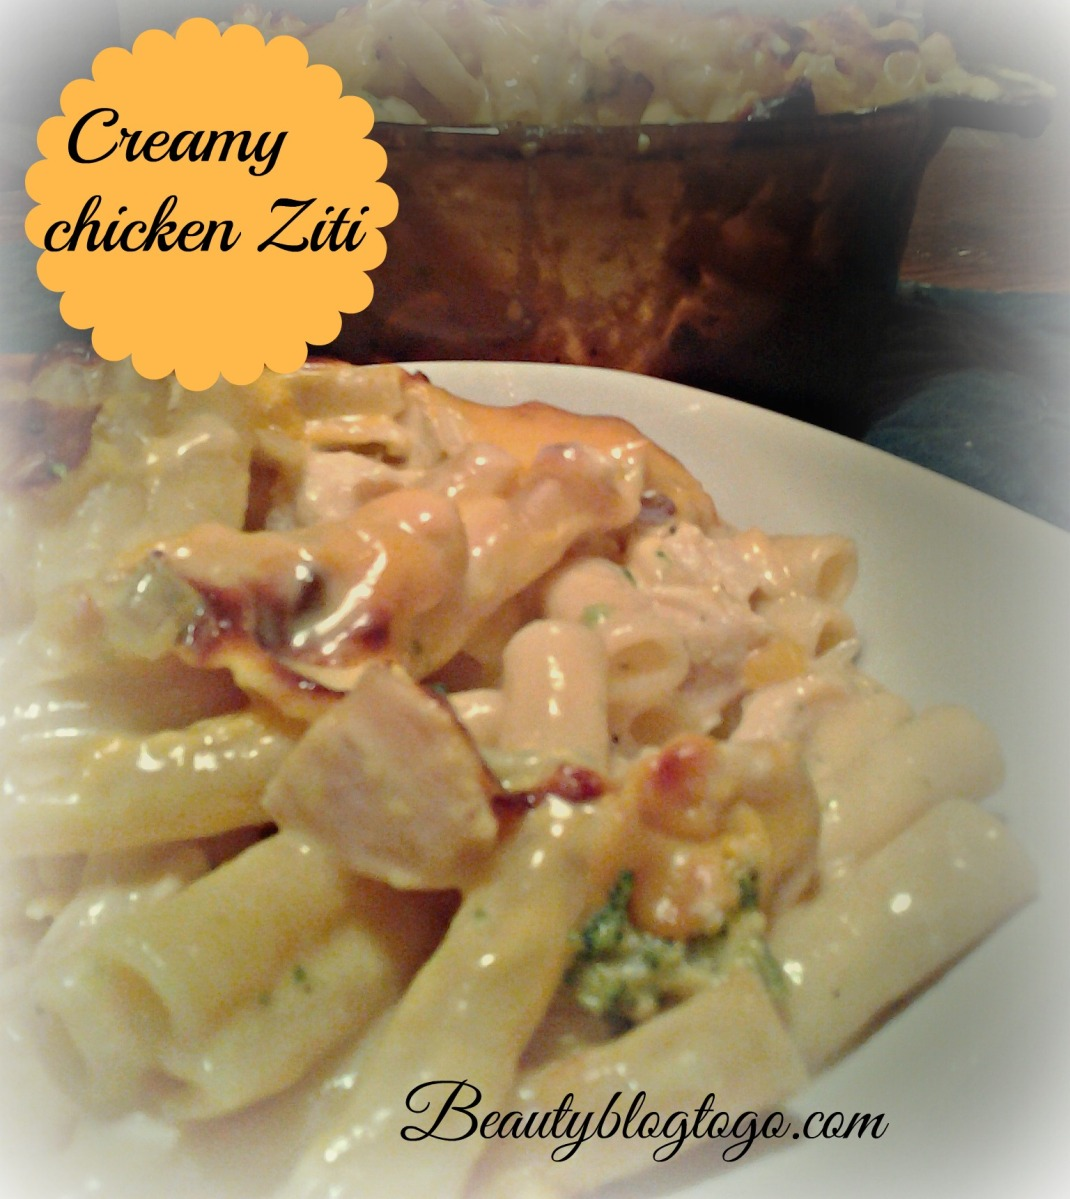 CREAMY CHICKEN ZITI RECIPE